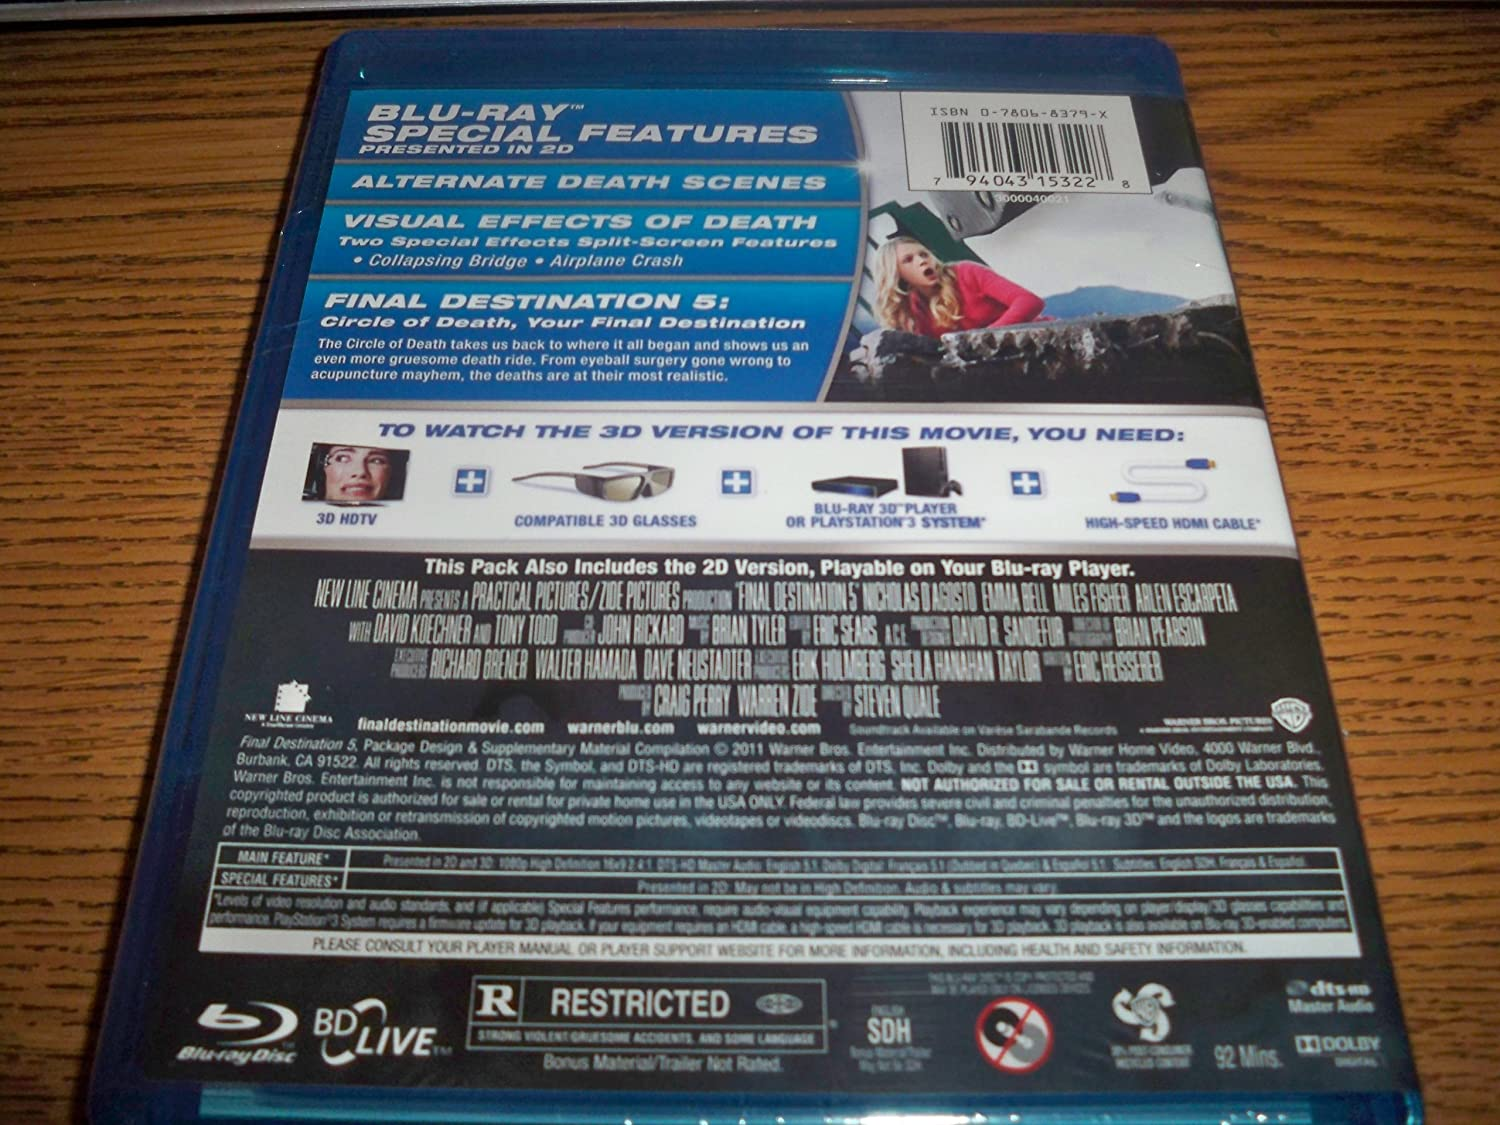 Amazon.com: Final Destination 5 3D (Blu-ray 3D + Blu-ray + ...